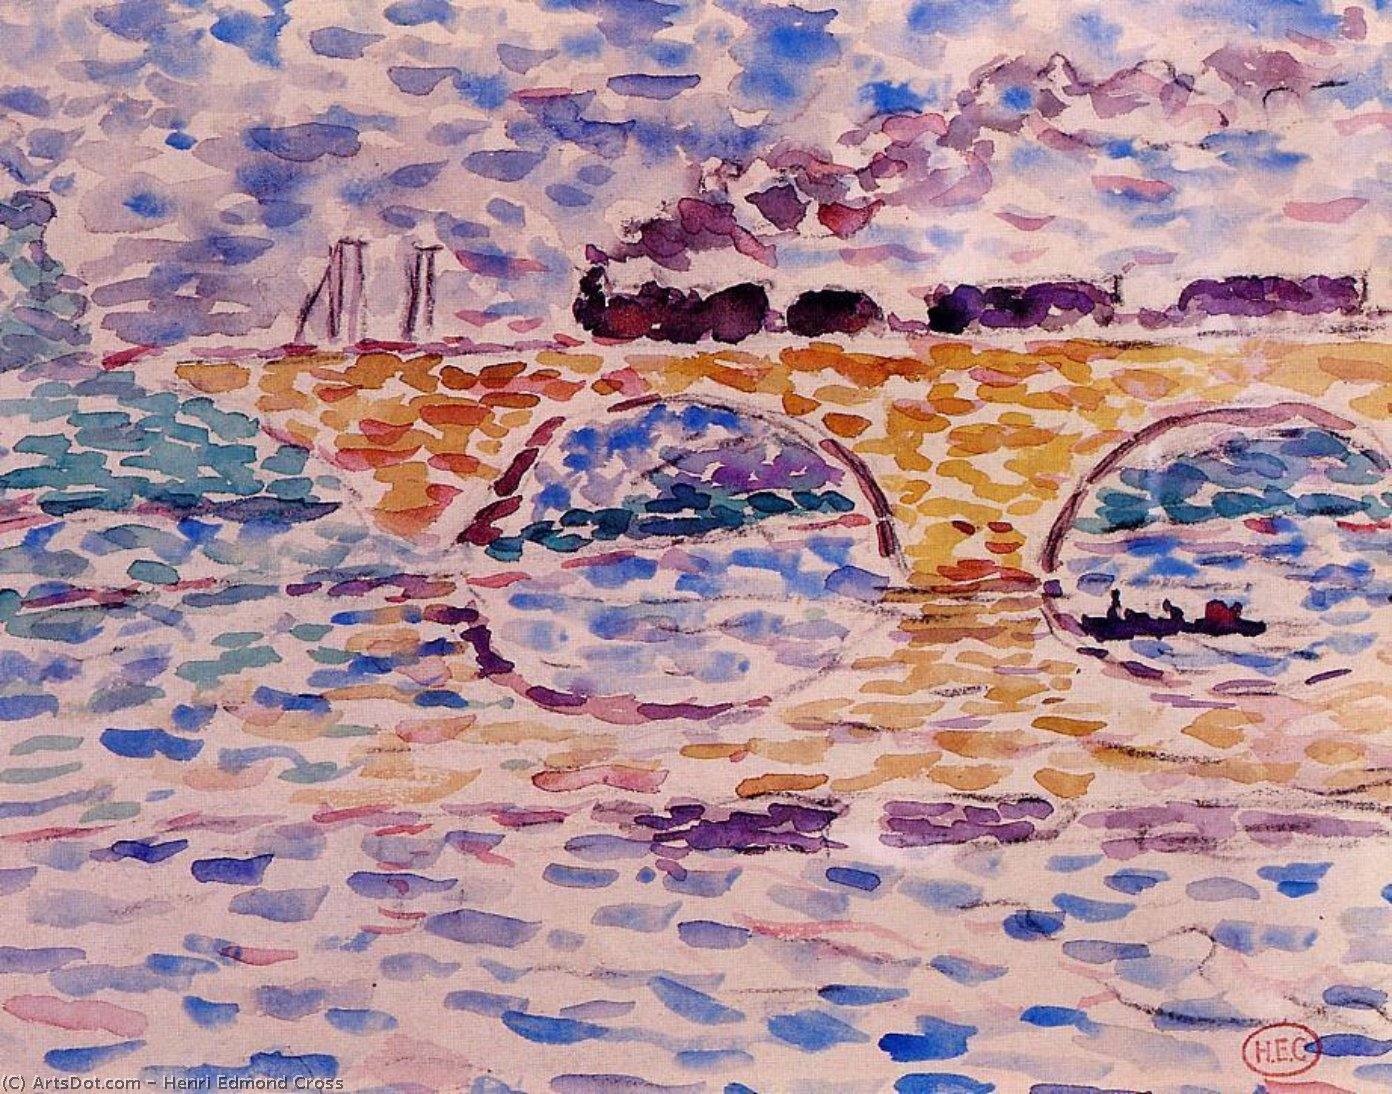 The Viaduct, Watercolour by Henri Edmond Cross (1856-1910, France)